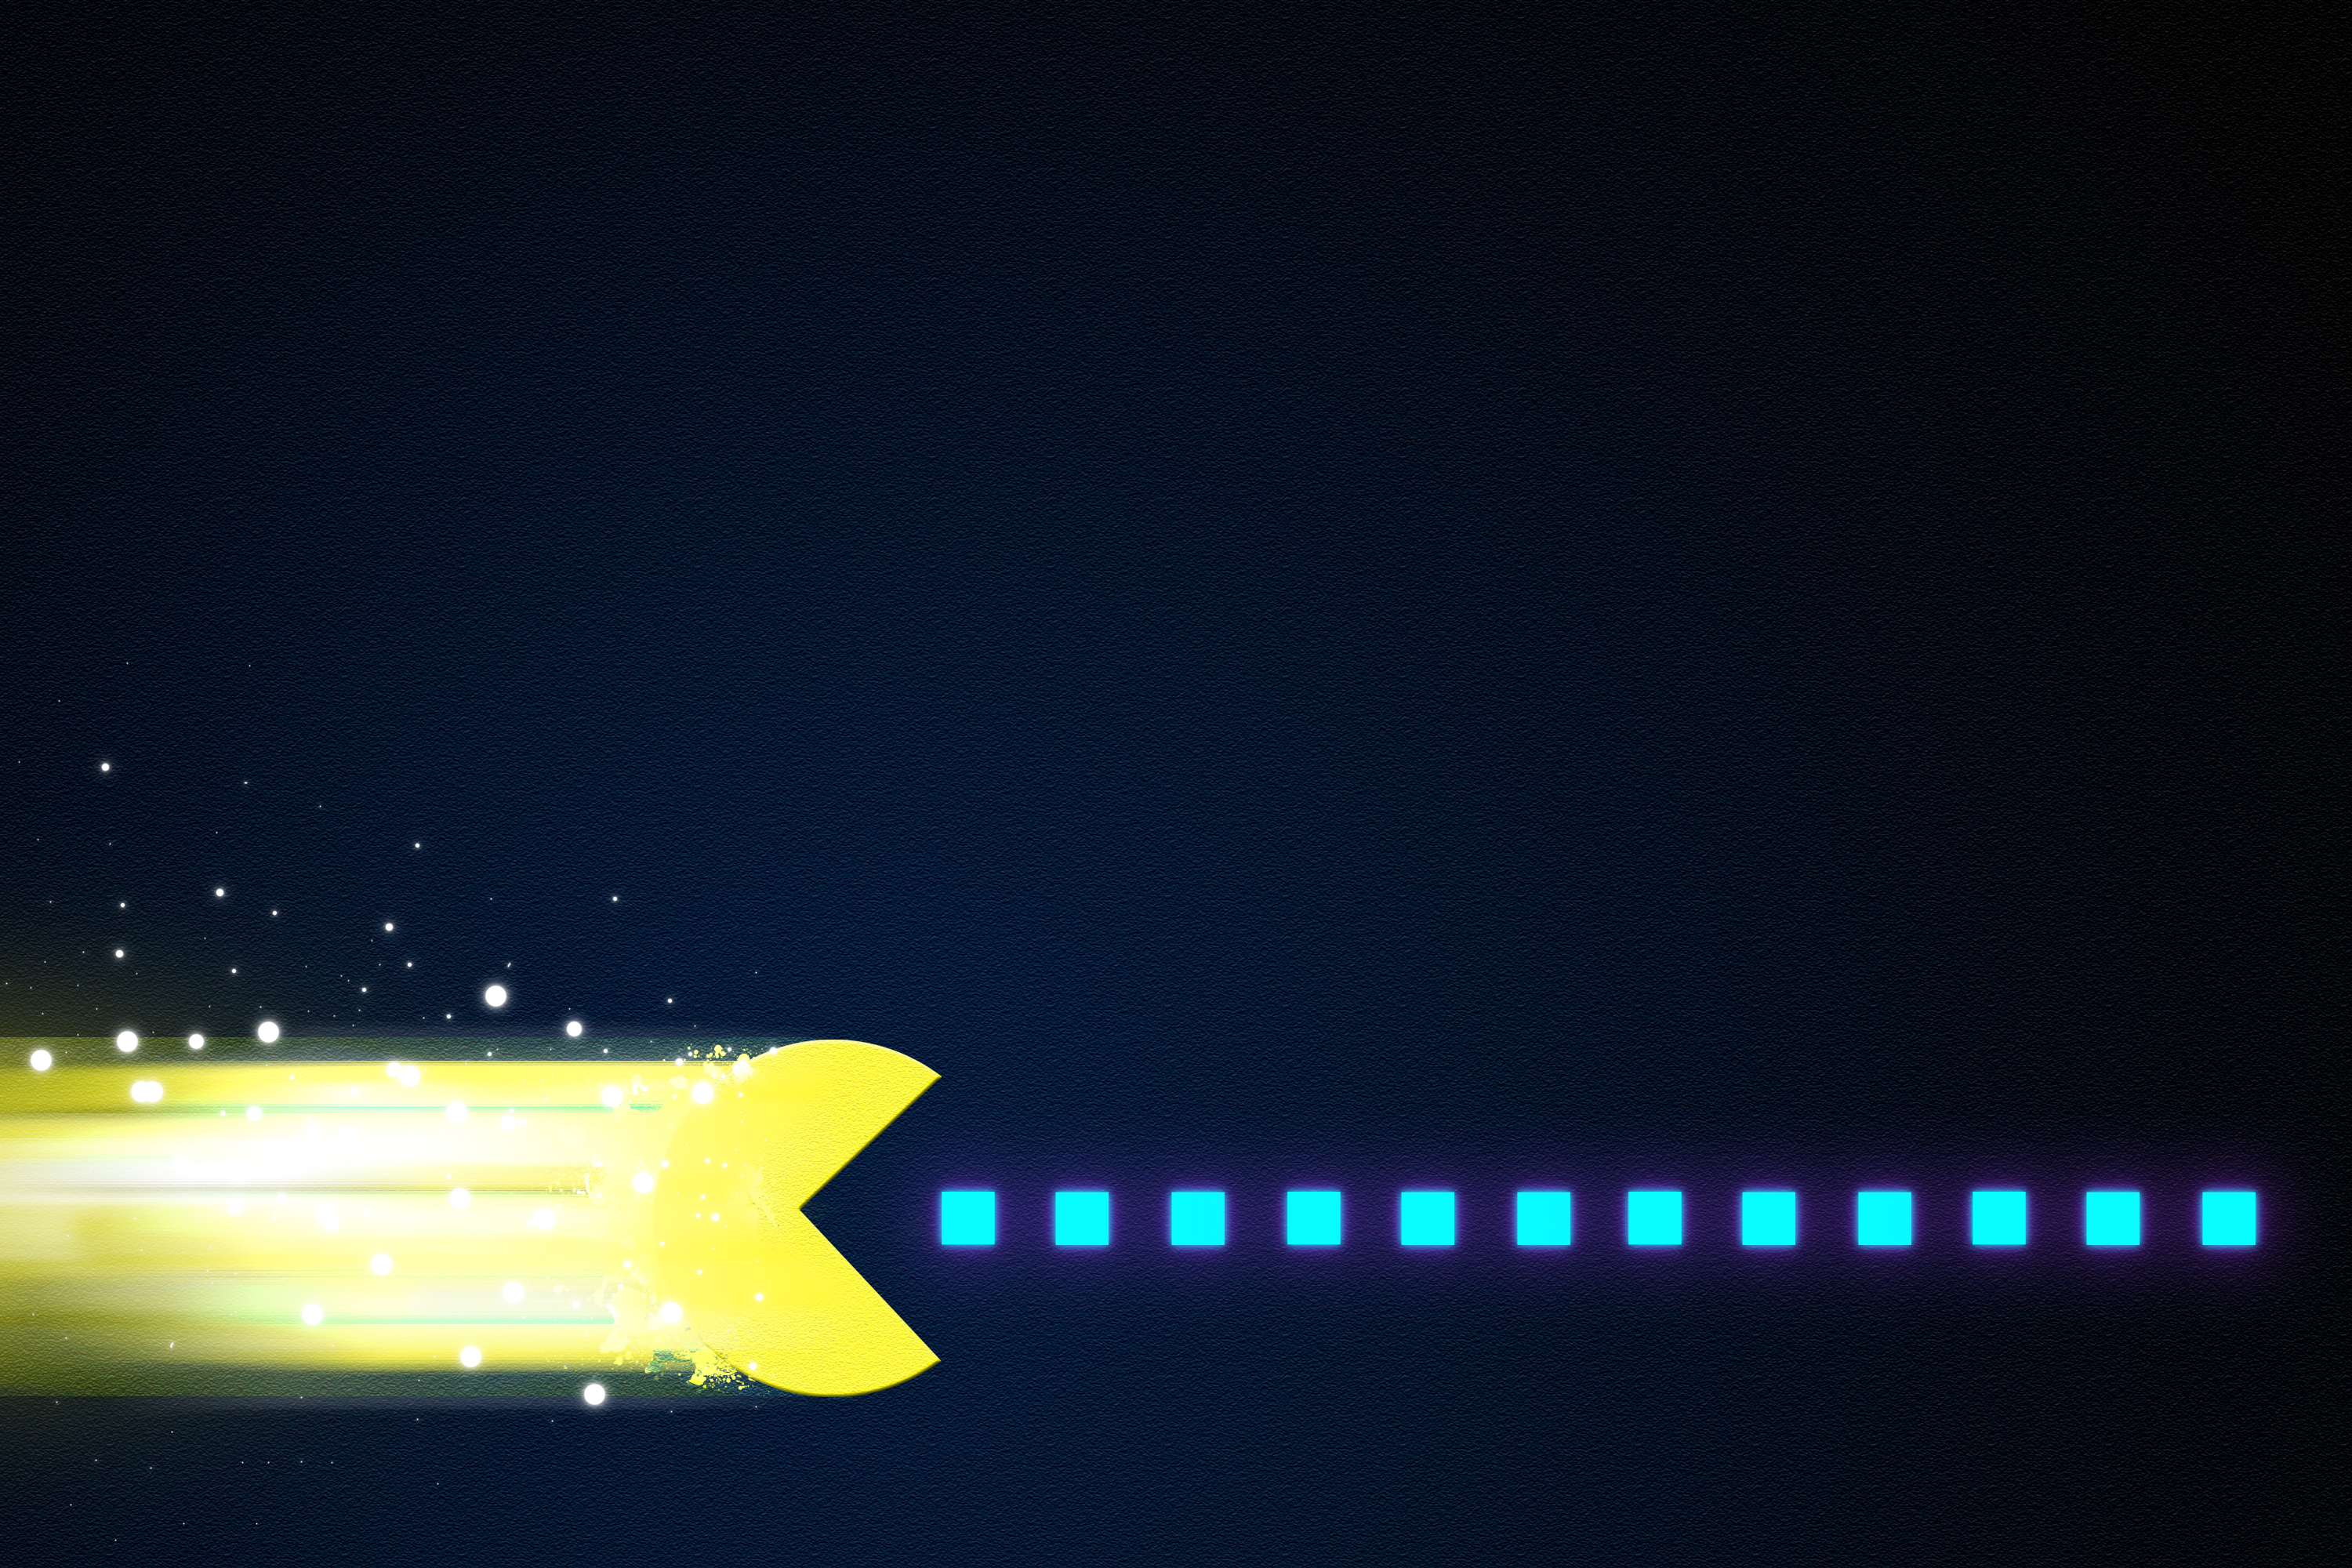 Google themes pacman - Pacman Background Blank Video Game Pac Man